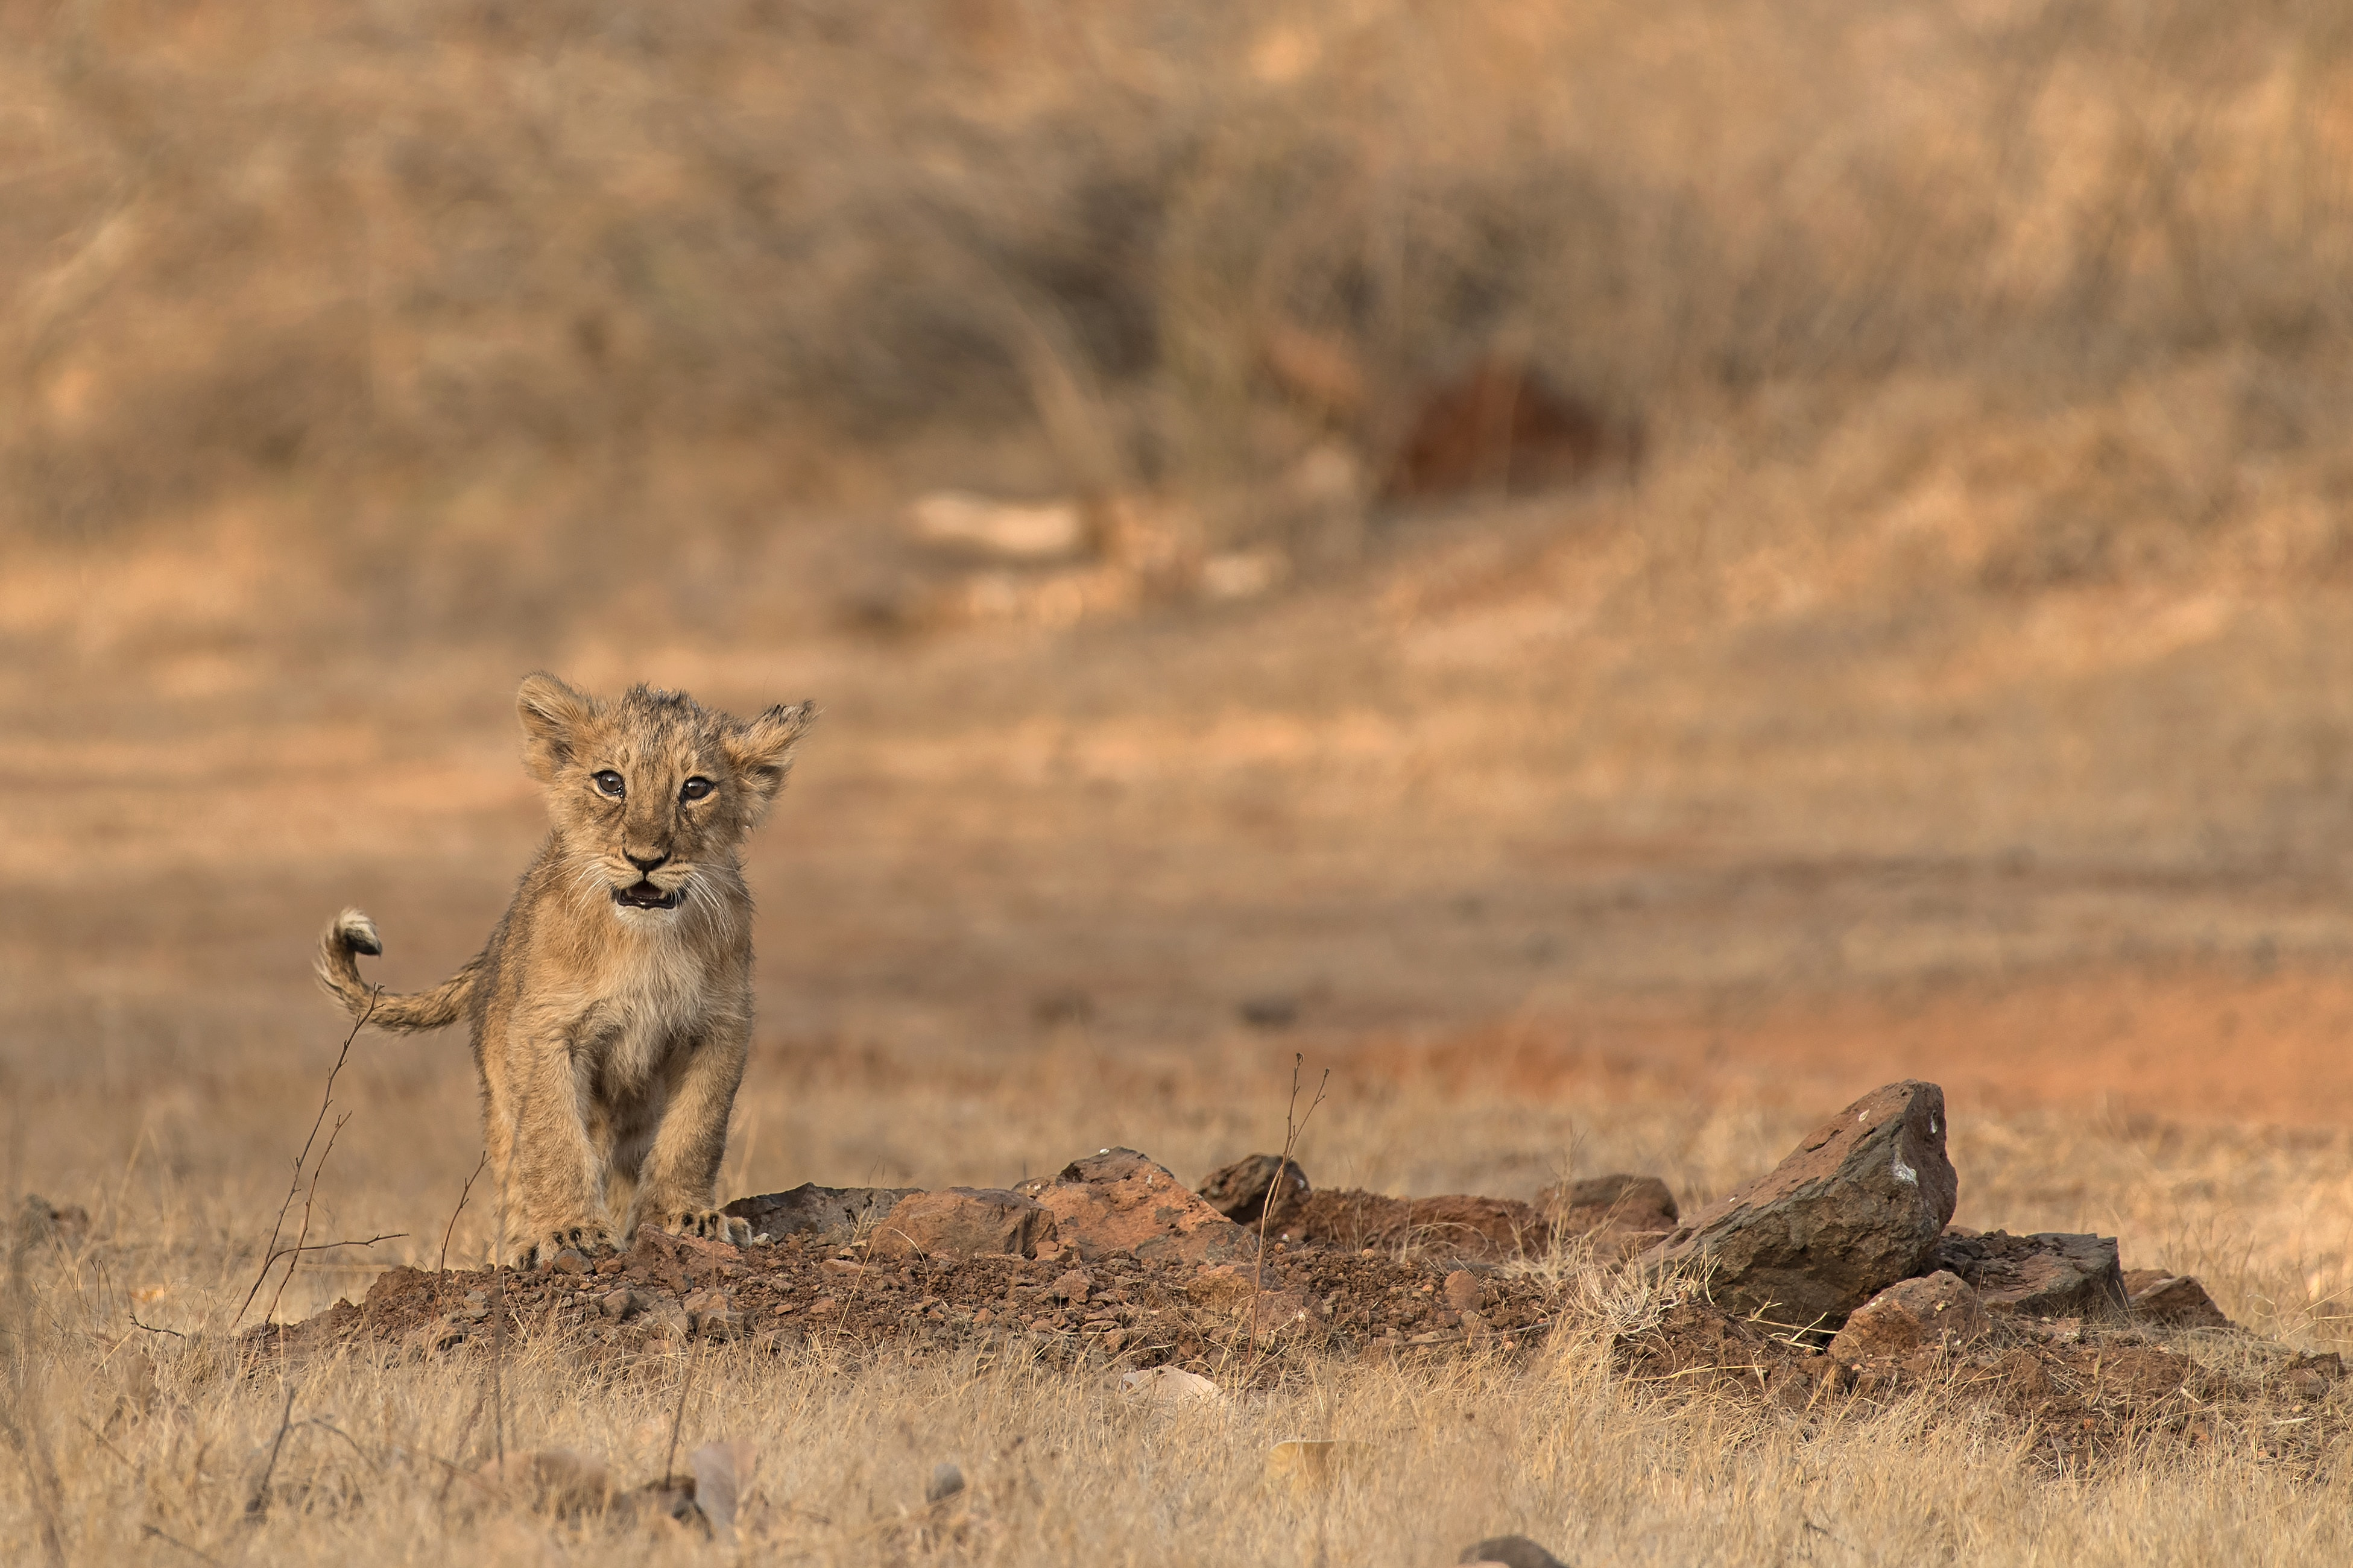 156232 download wallpaper Animals, Lion, Lion Cub, Young, Joey, Wildlife, Savanna screensavers and pictures for free